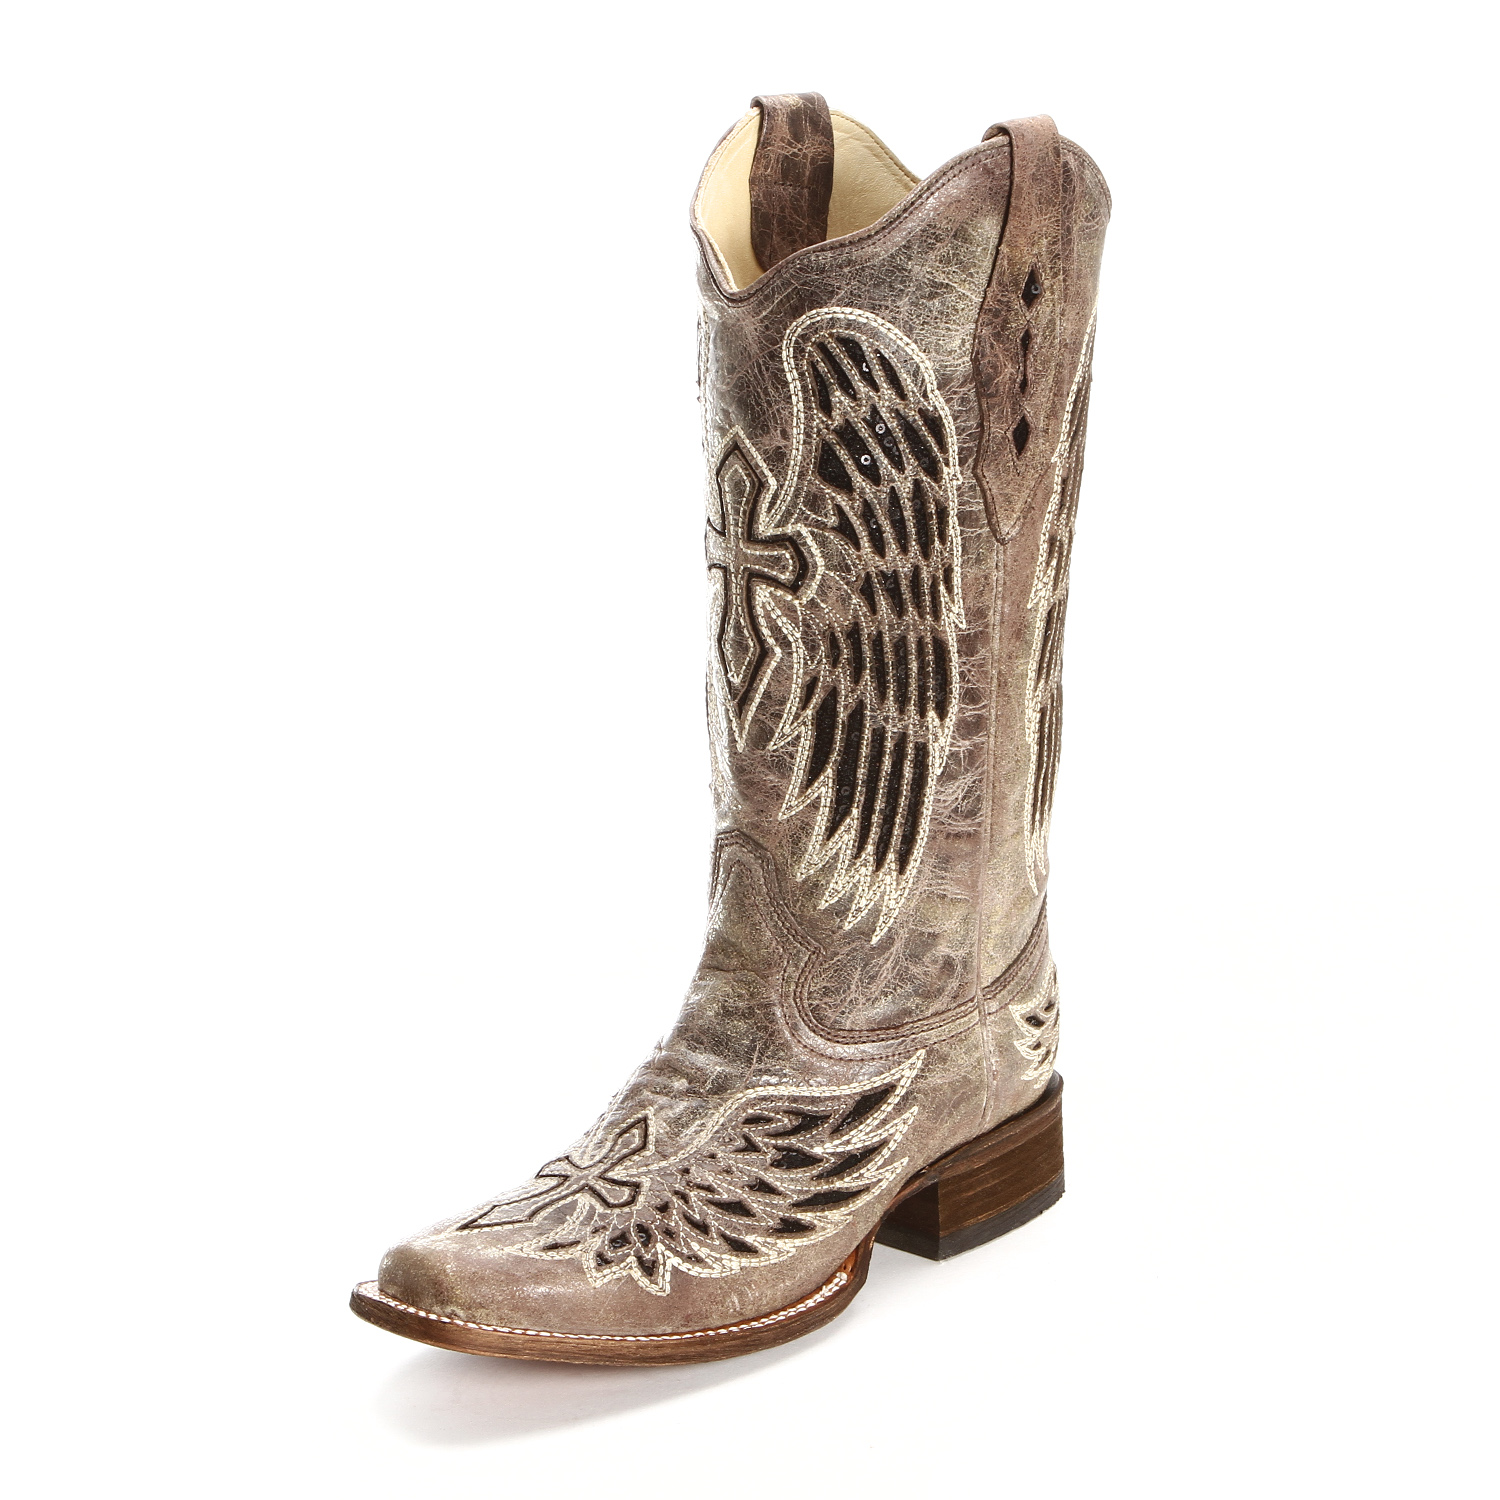 Corral Womens Sequin Cross Inlay Square Toe Cowgirl Boots Tan